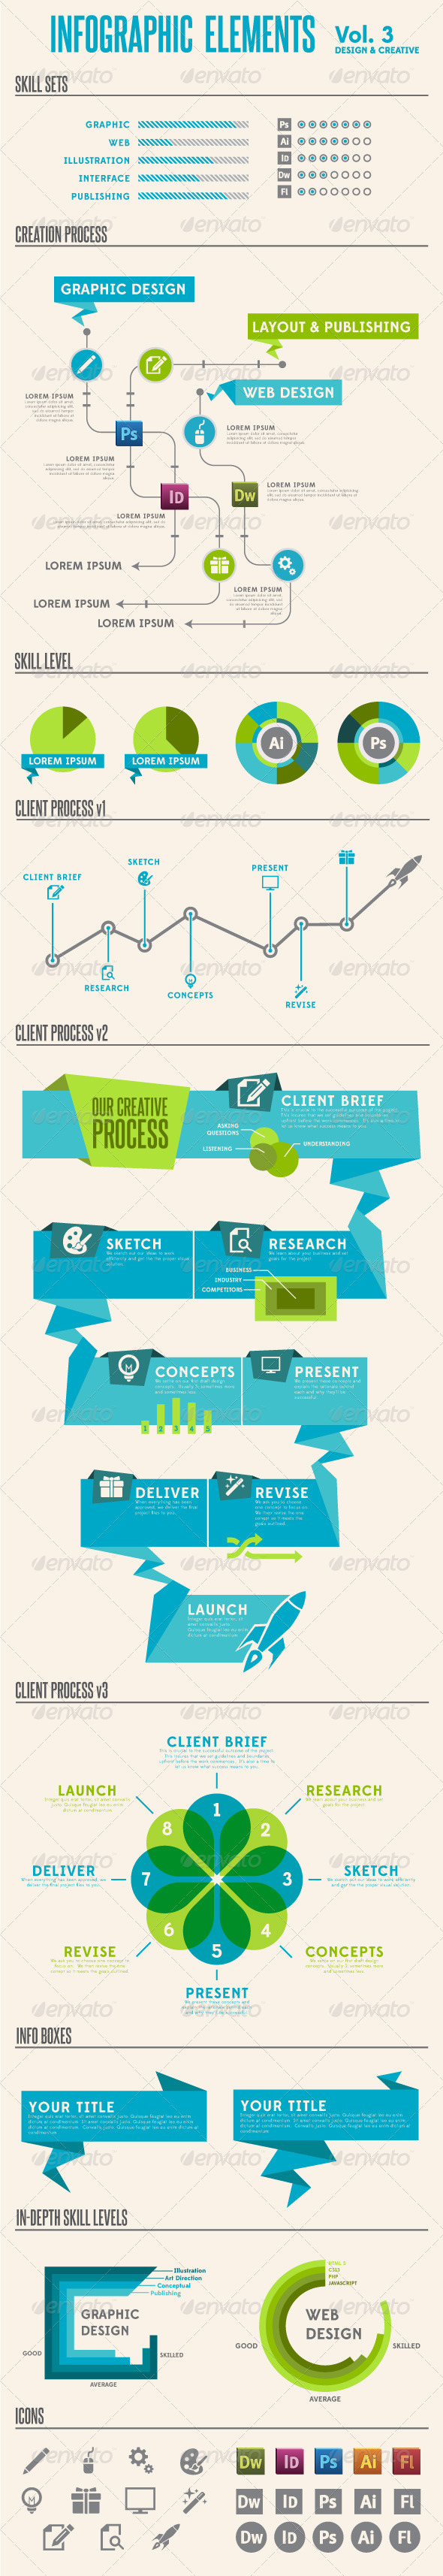 GraphicRiver Infographic Elements Vol 3 3109226